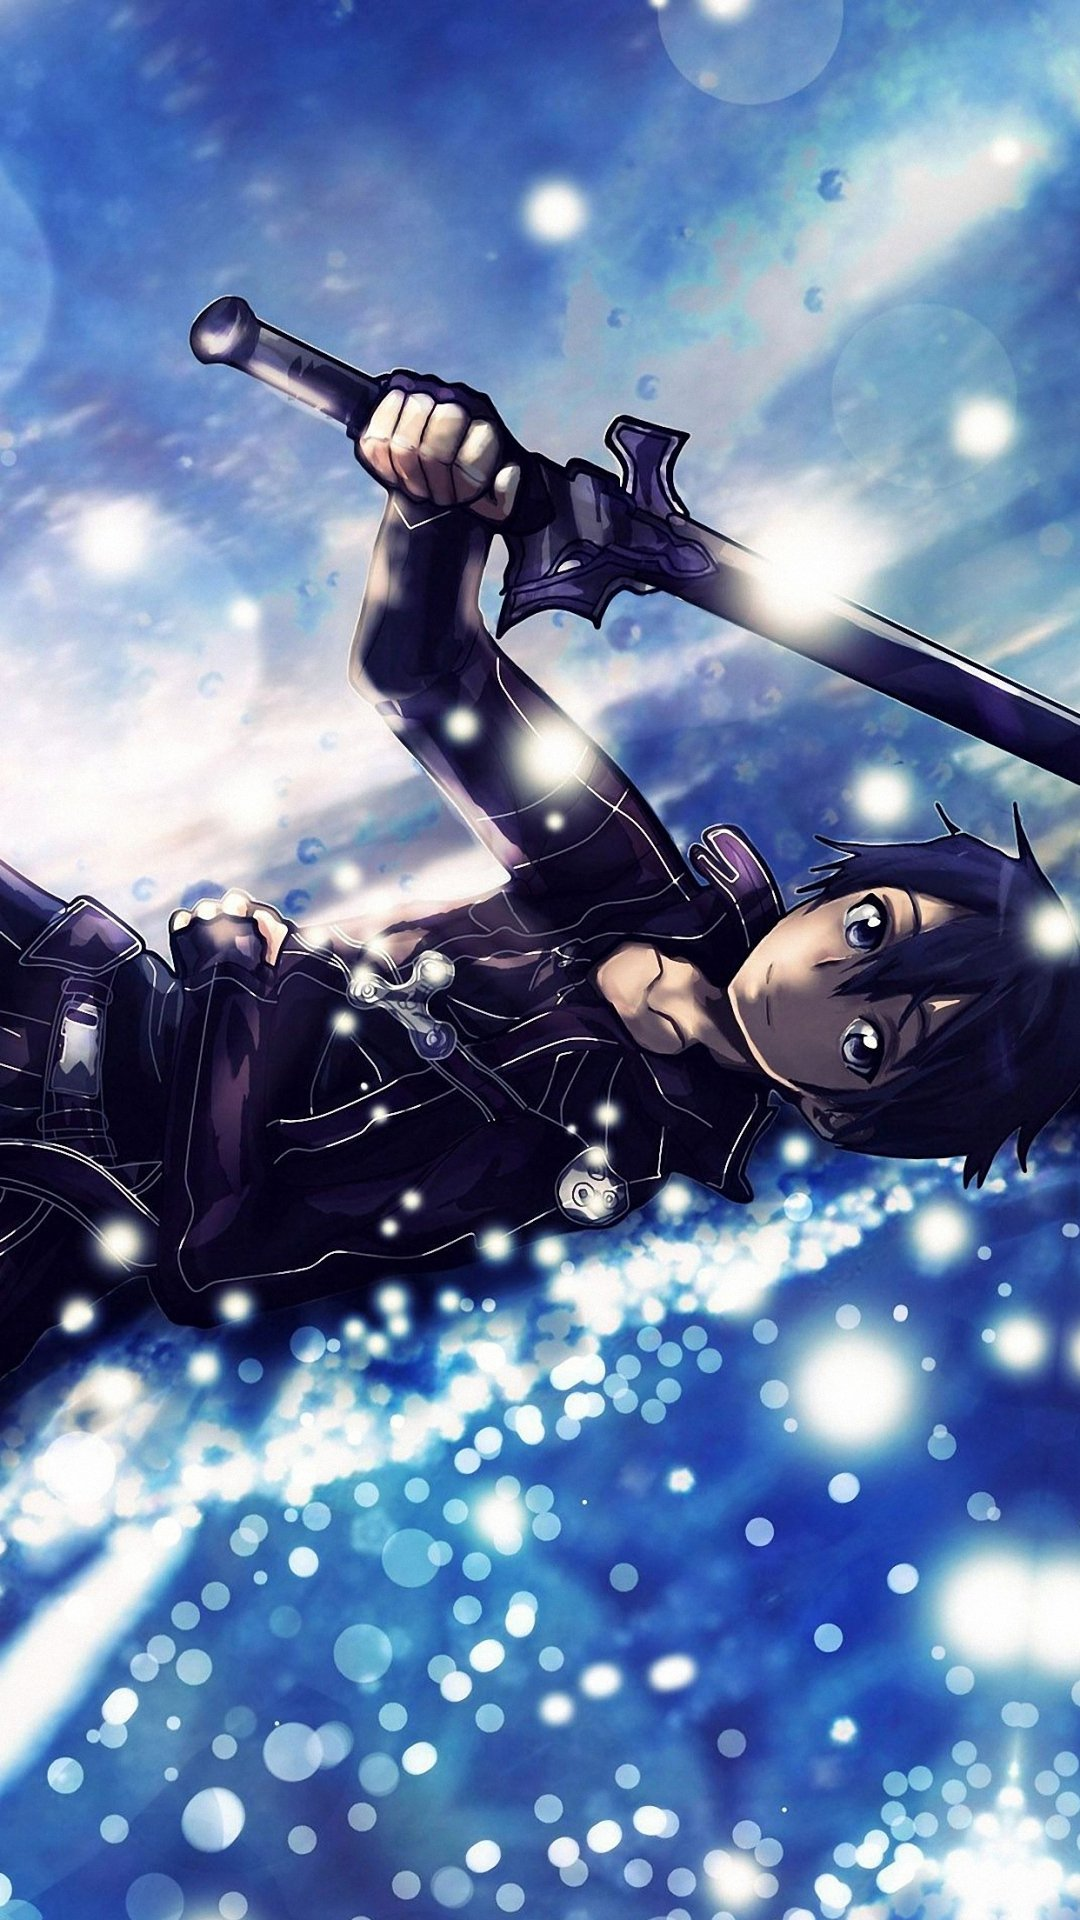 Free Download Kirito Sword Art Online Iphone 6s Plus Wallpapers Hd